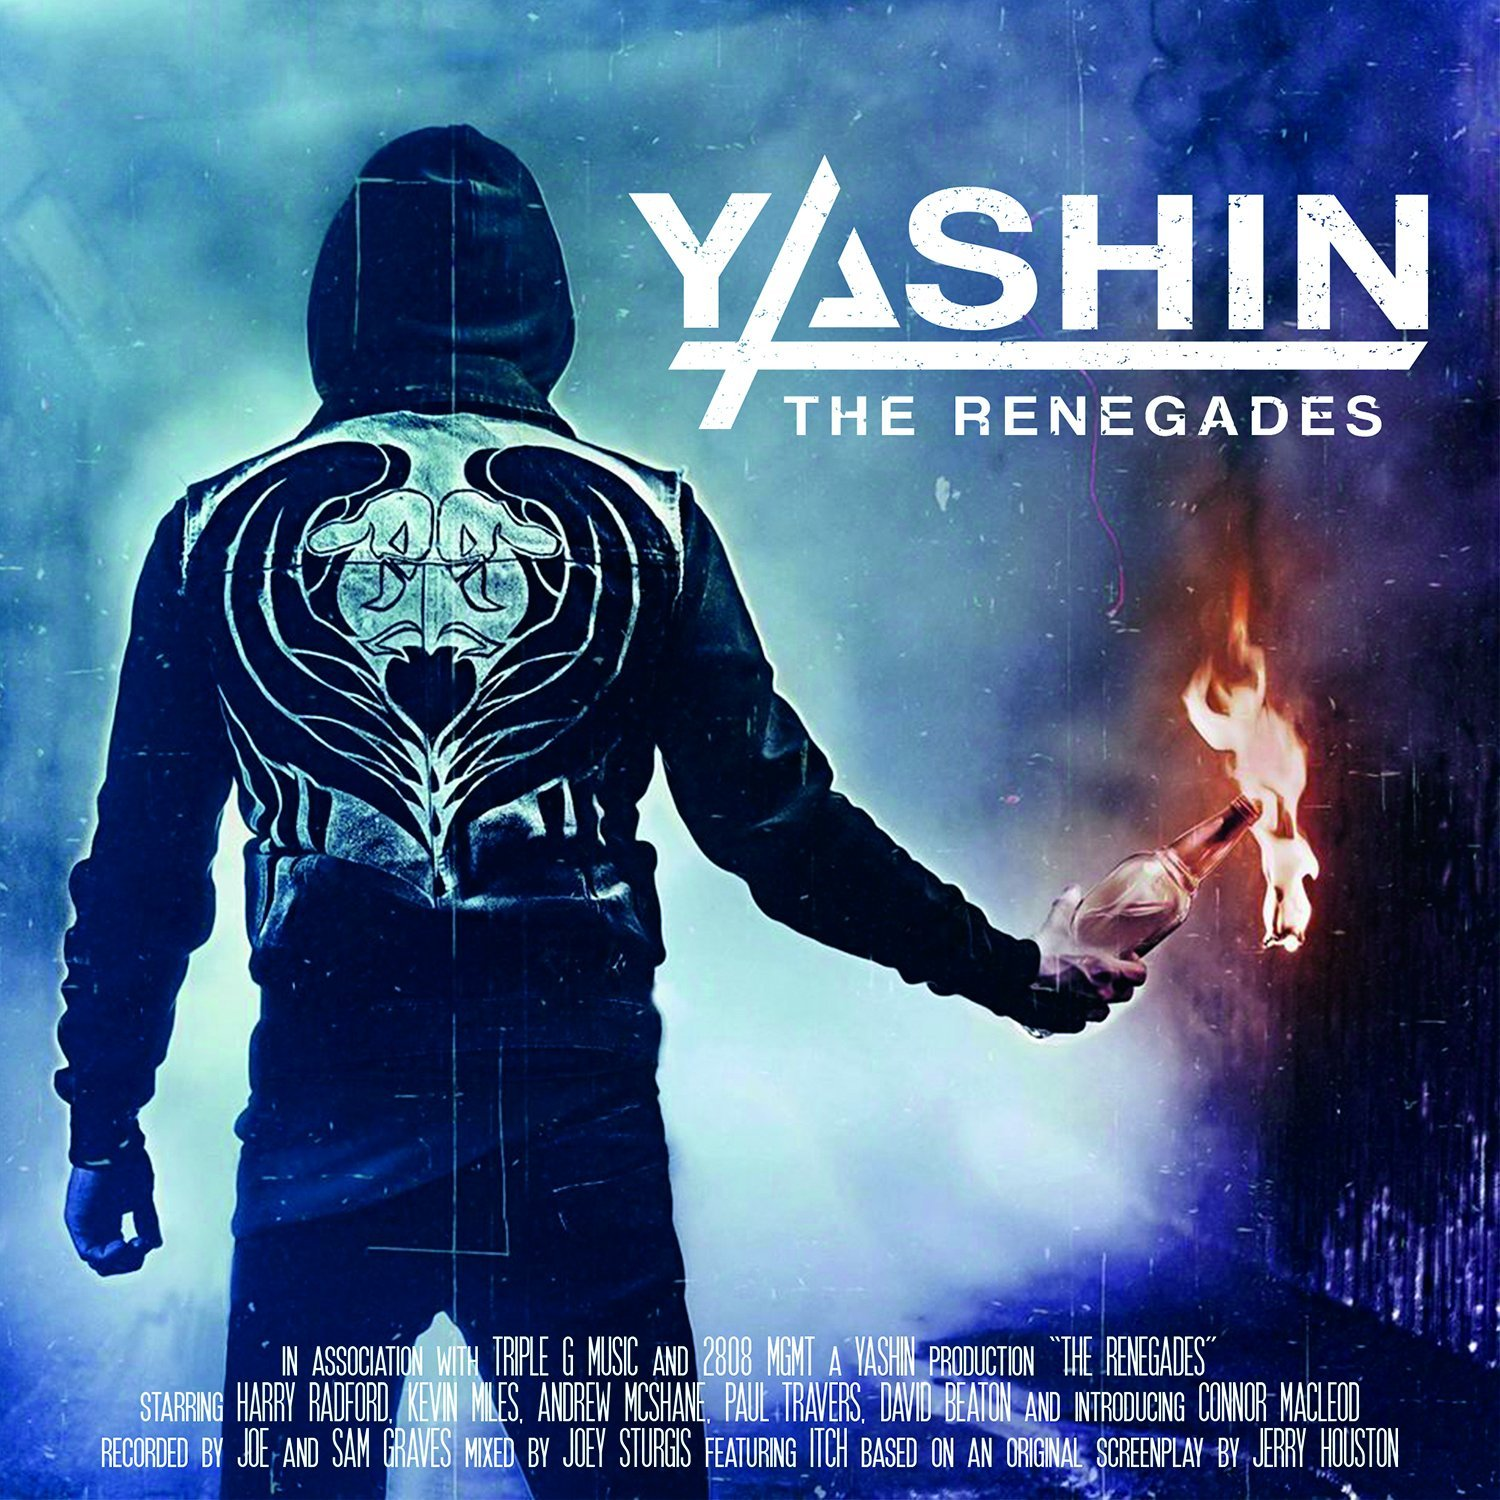 Yashin THE RENEGADES